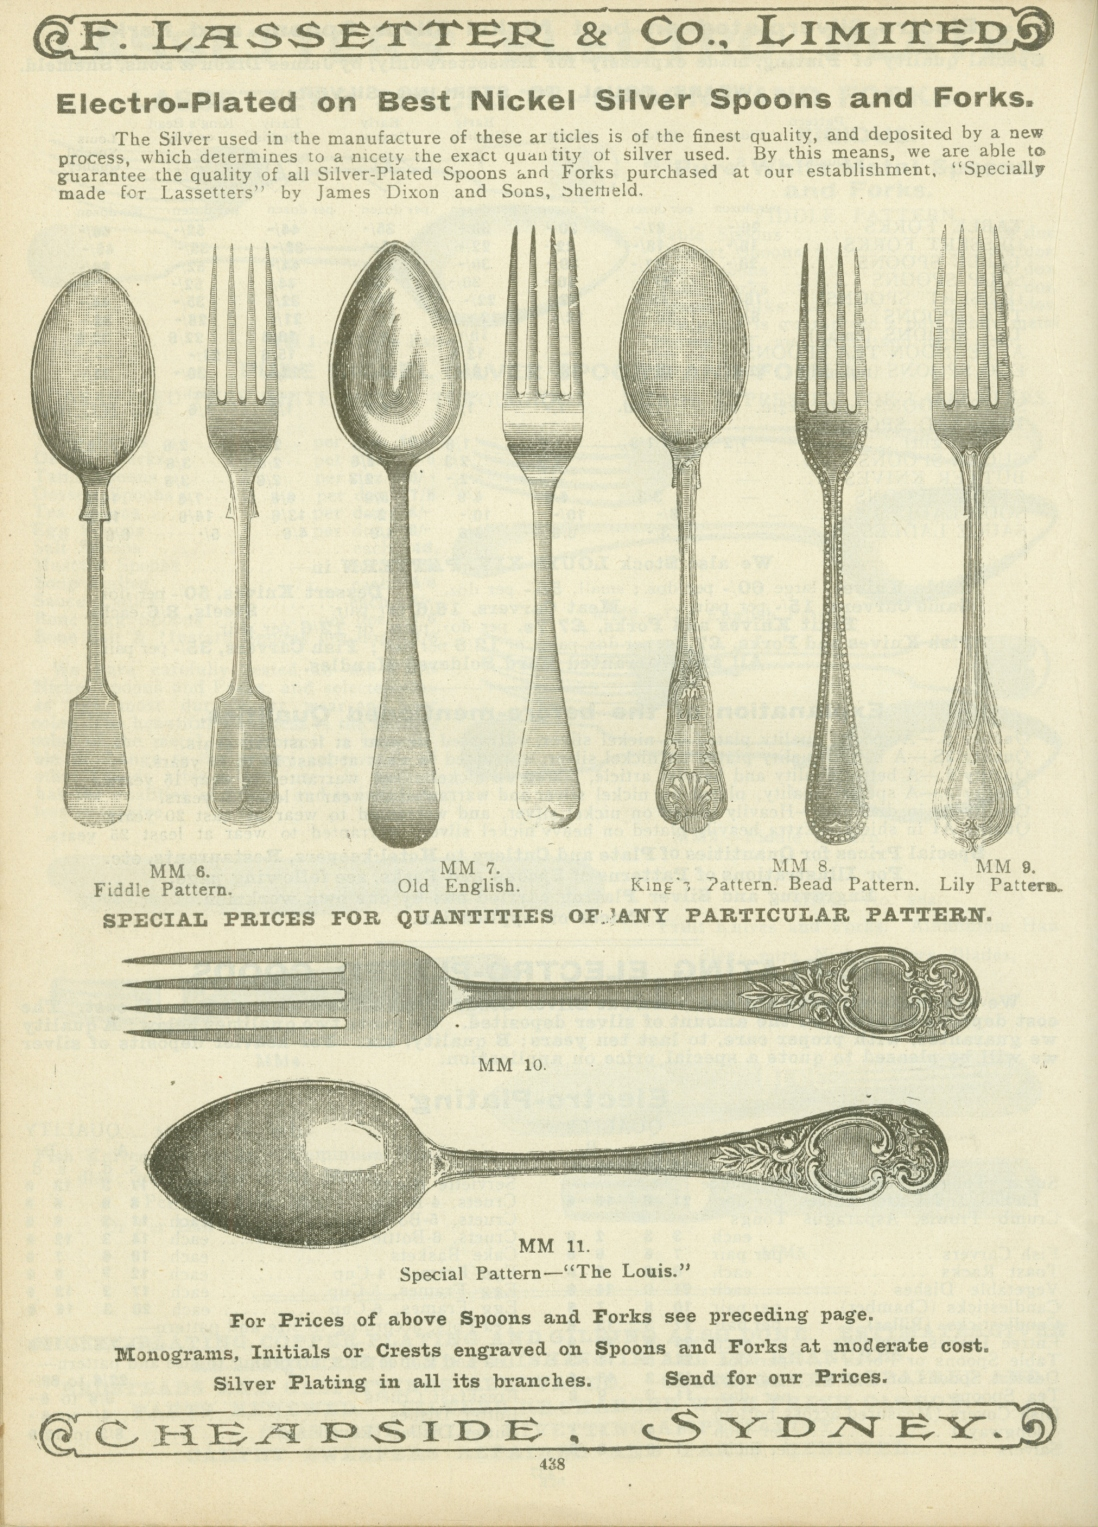 Page from catalogue, with illustrations of spoons and forks.